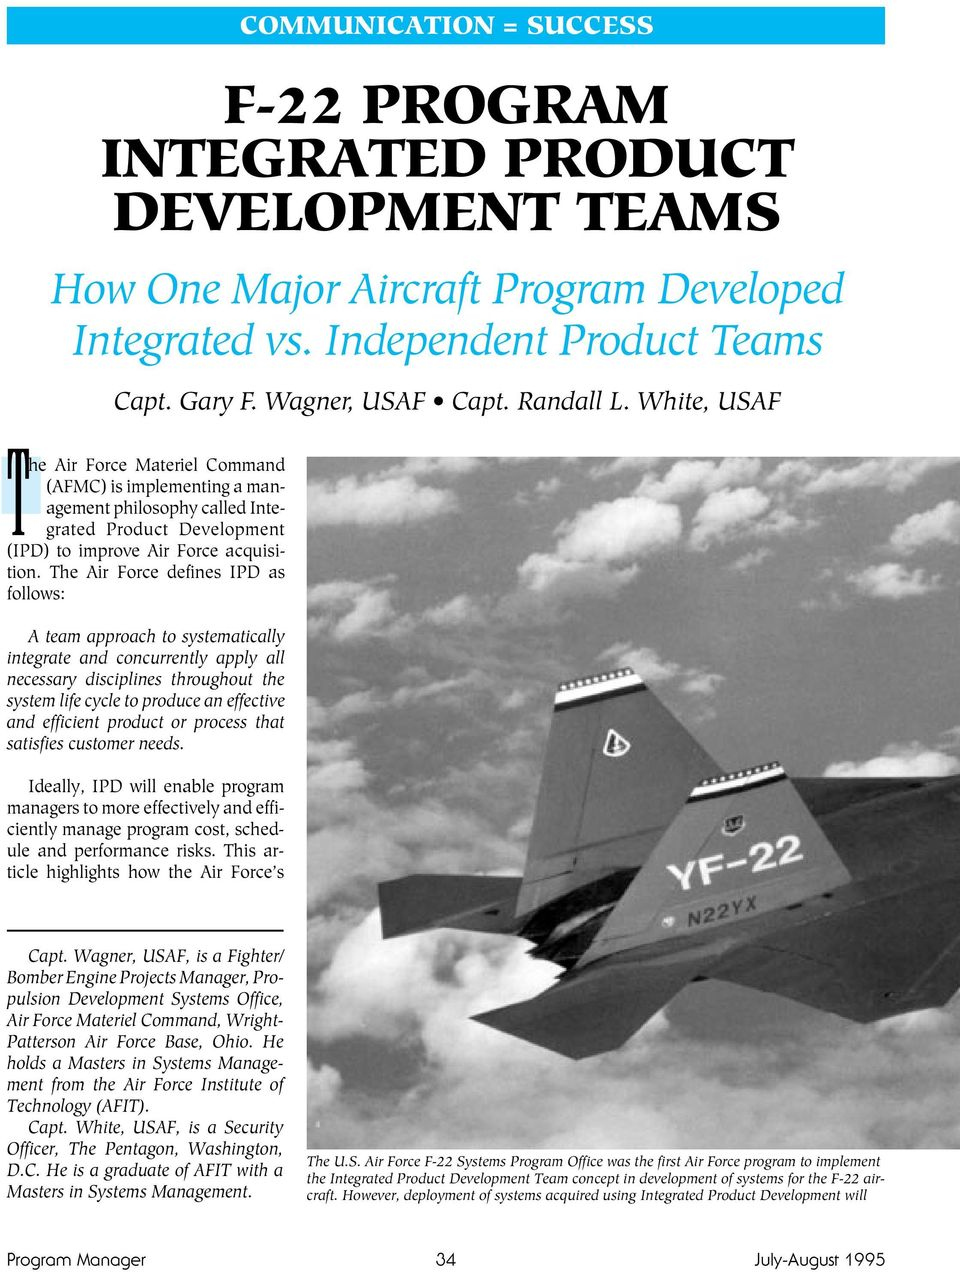 The Air Force defines IPD as follows: A team approach to systematically integrate and concurrently apply all necessary disciplines throughout the system life cycle to produce an effective and